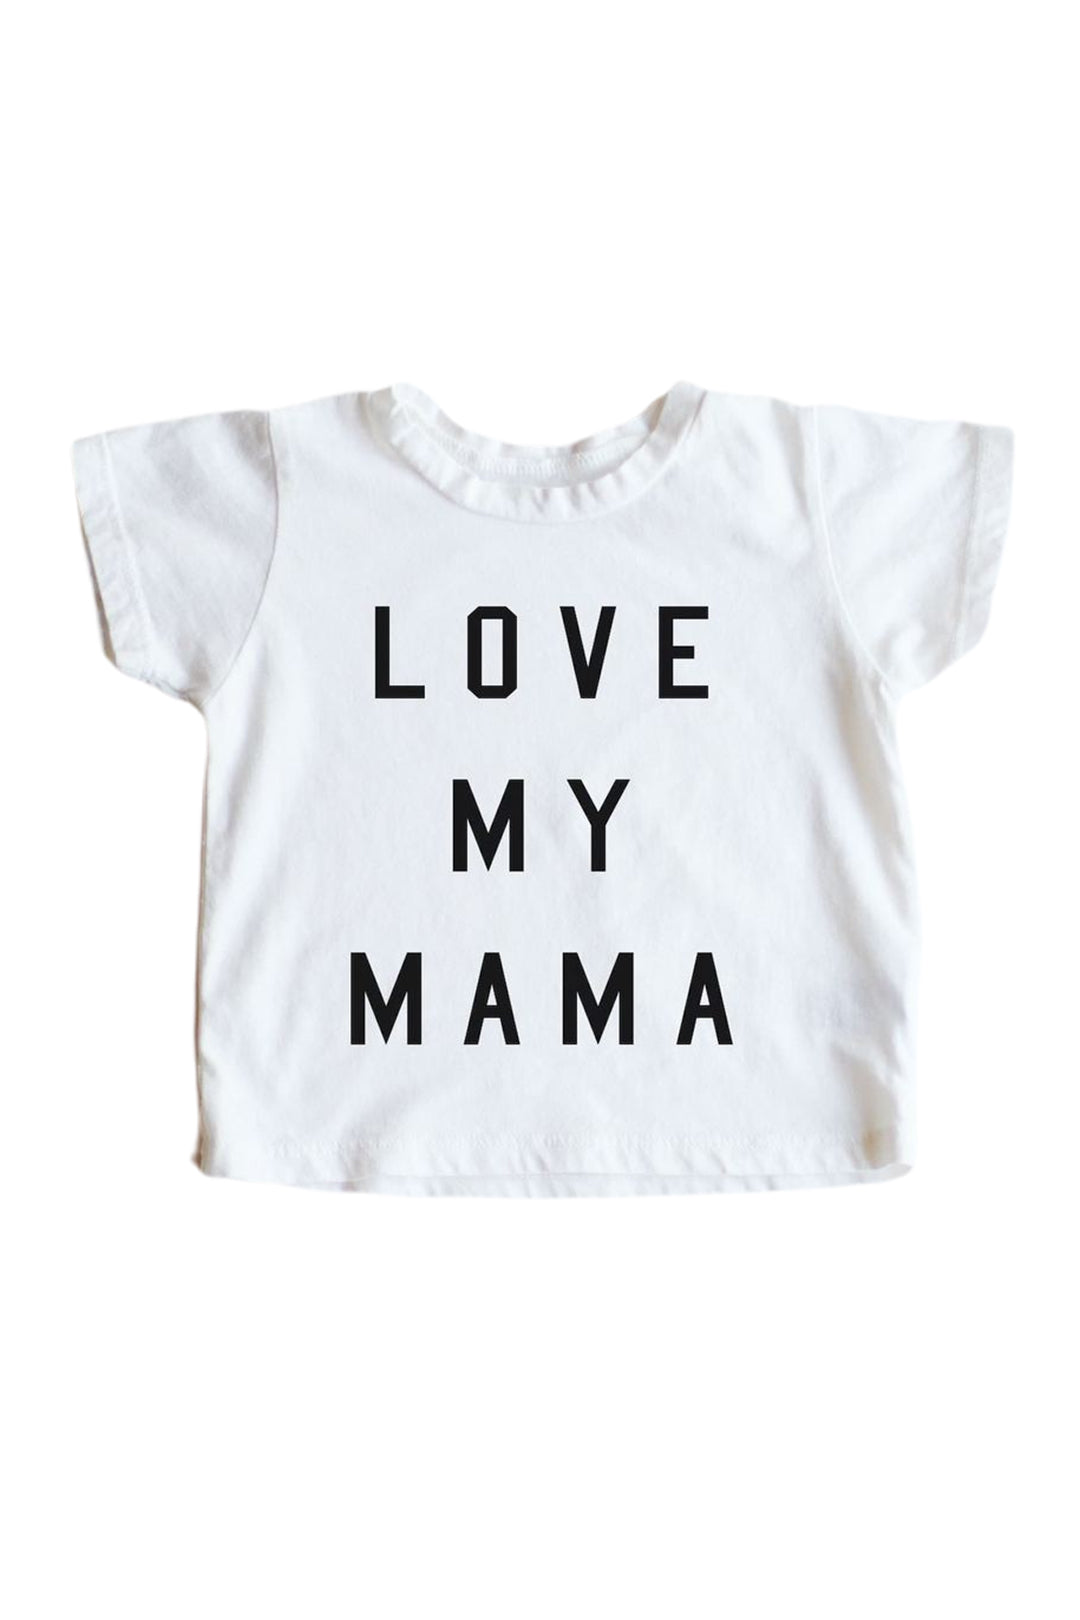 love my mama t-shirt